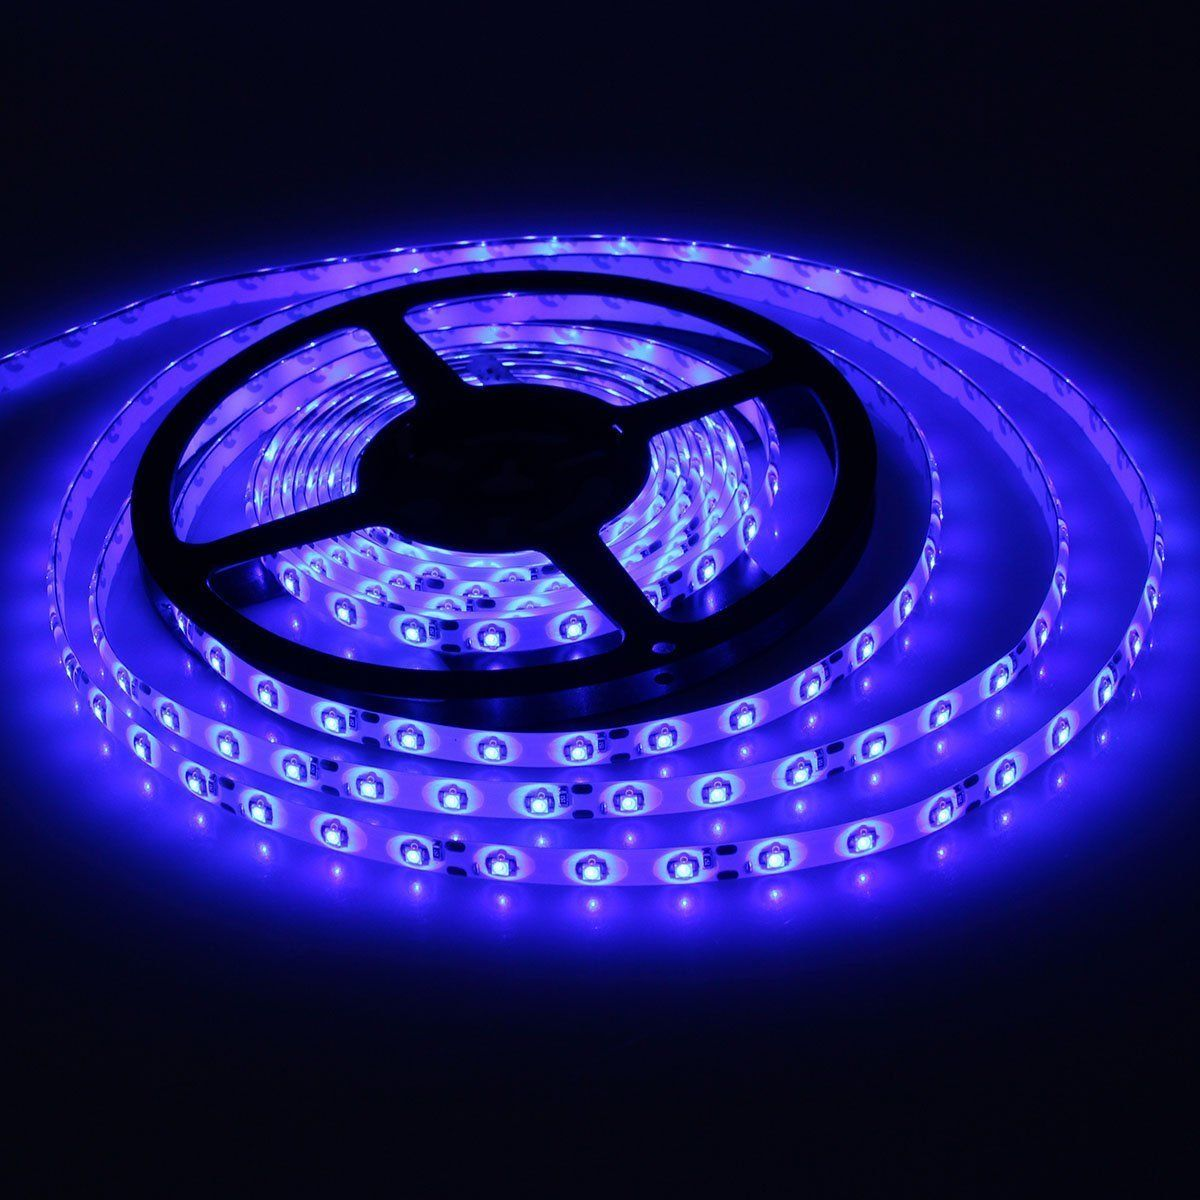 Dodolightness Lampux 12v Flexible Led Strip Lights Blue Waterproof 300 Units 3528 Leds Light Strips Strip Lighting Flexible Led Strip Lights Waterproof Led